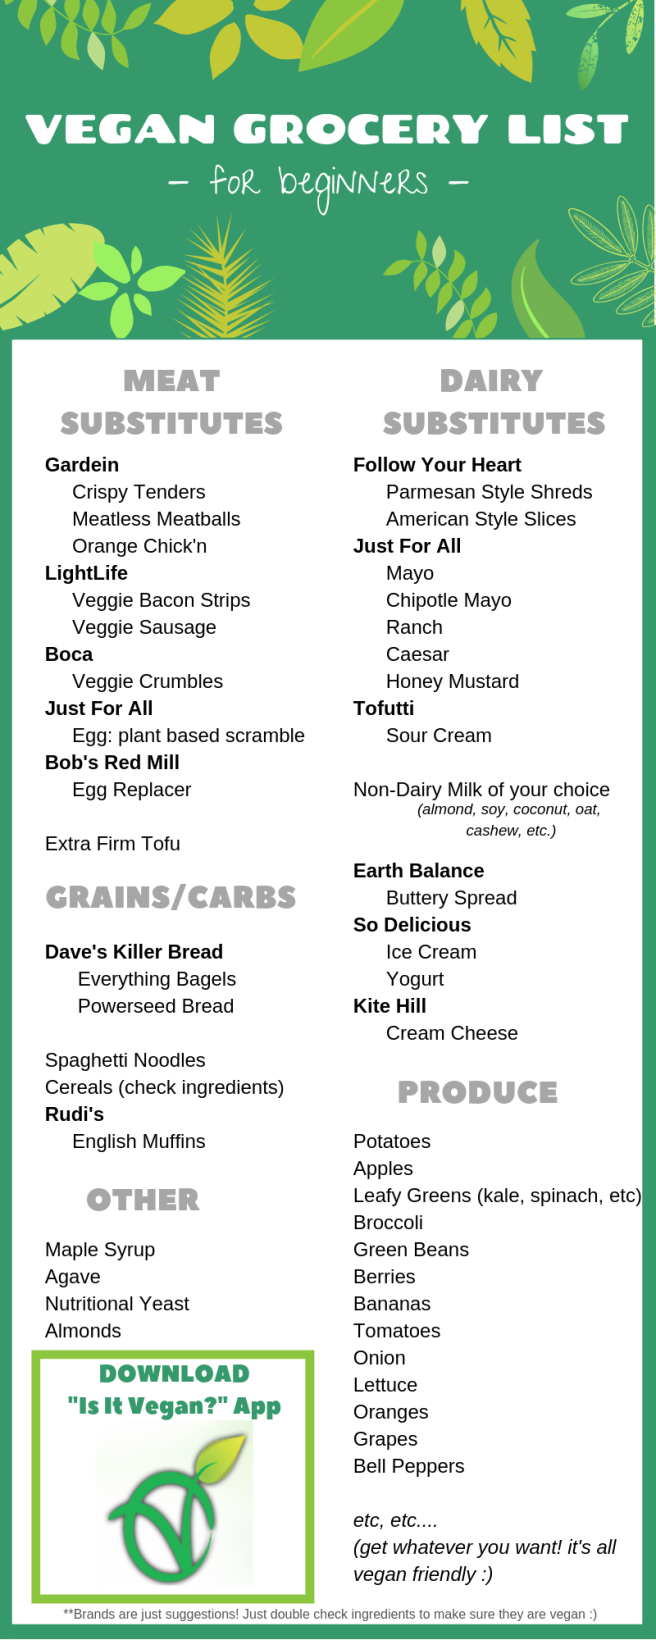 VEGAN GROCERY LIST-6.png